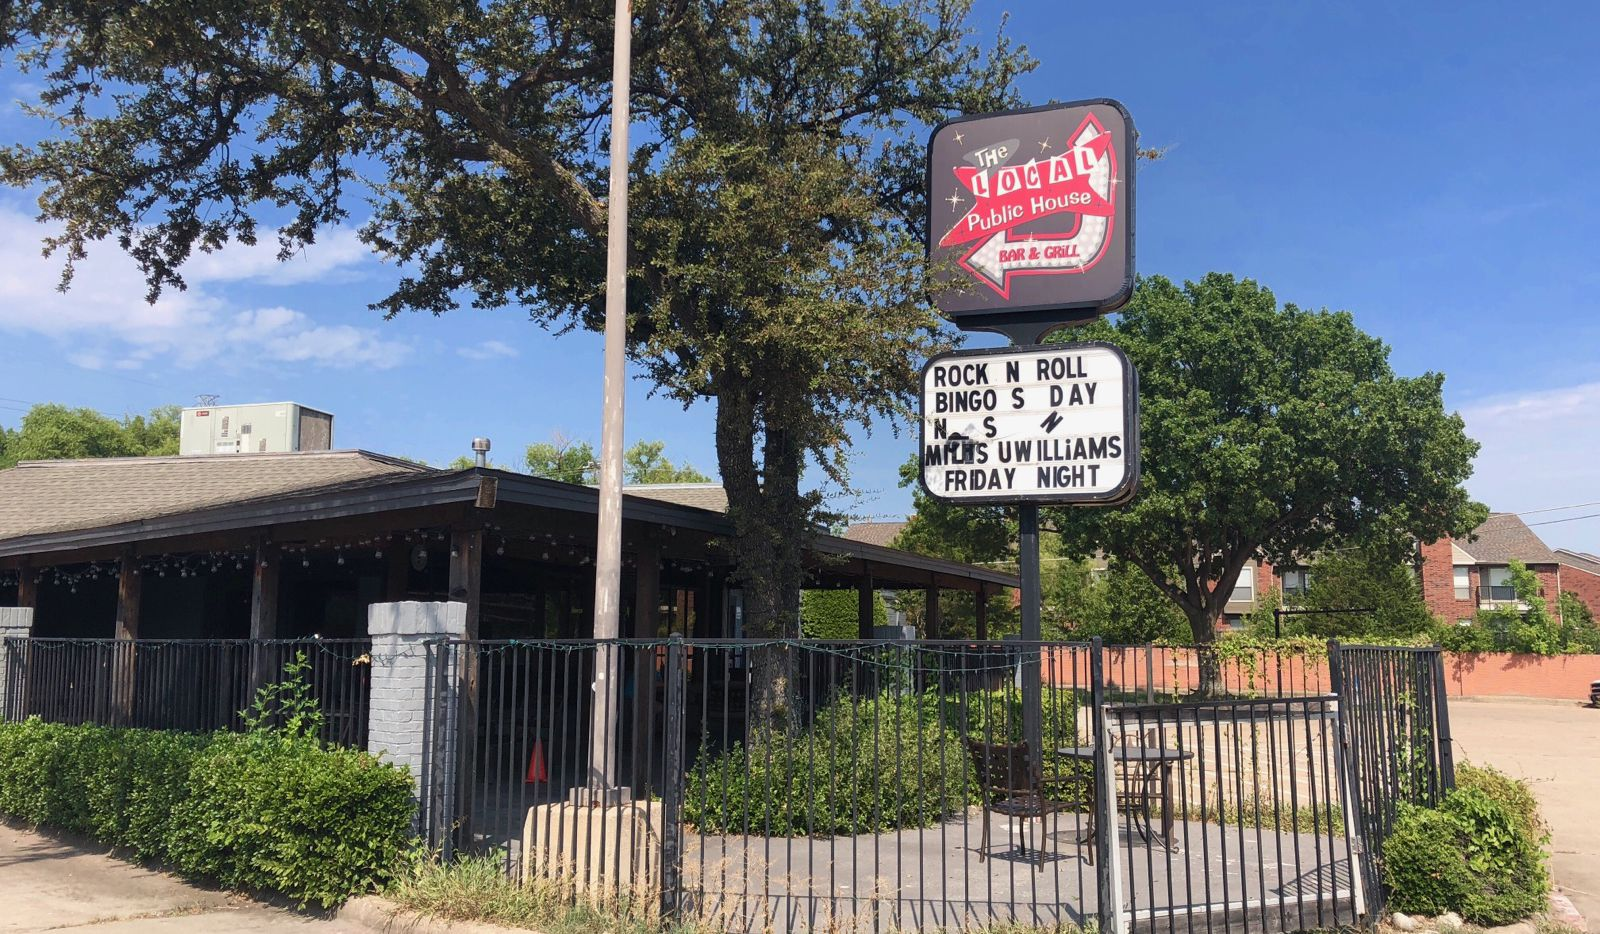 Local Public House agreed to give up its liquor license in a settlement with the Texas Alcoholic Beverage Commission.